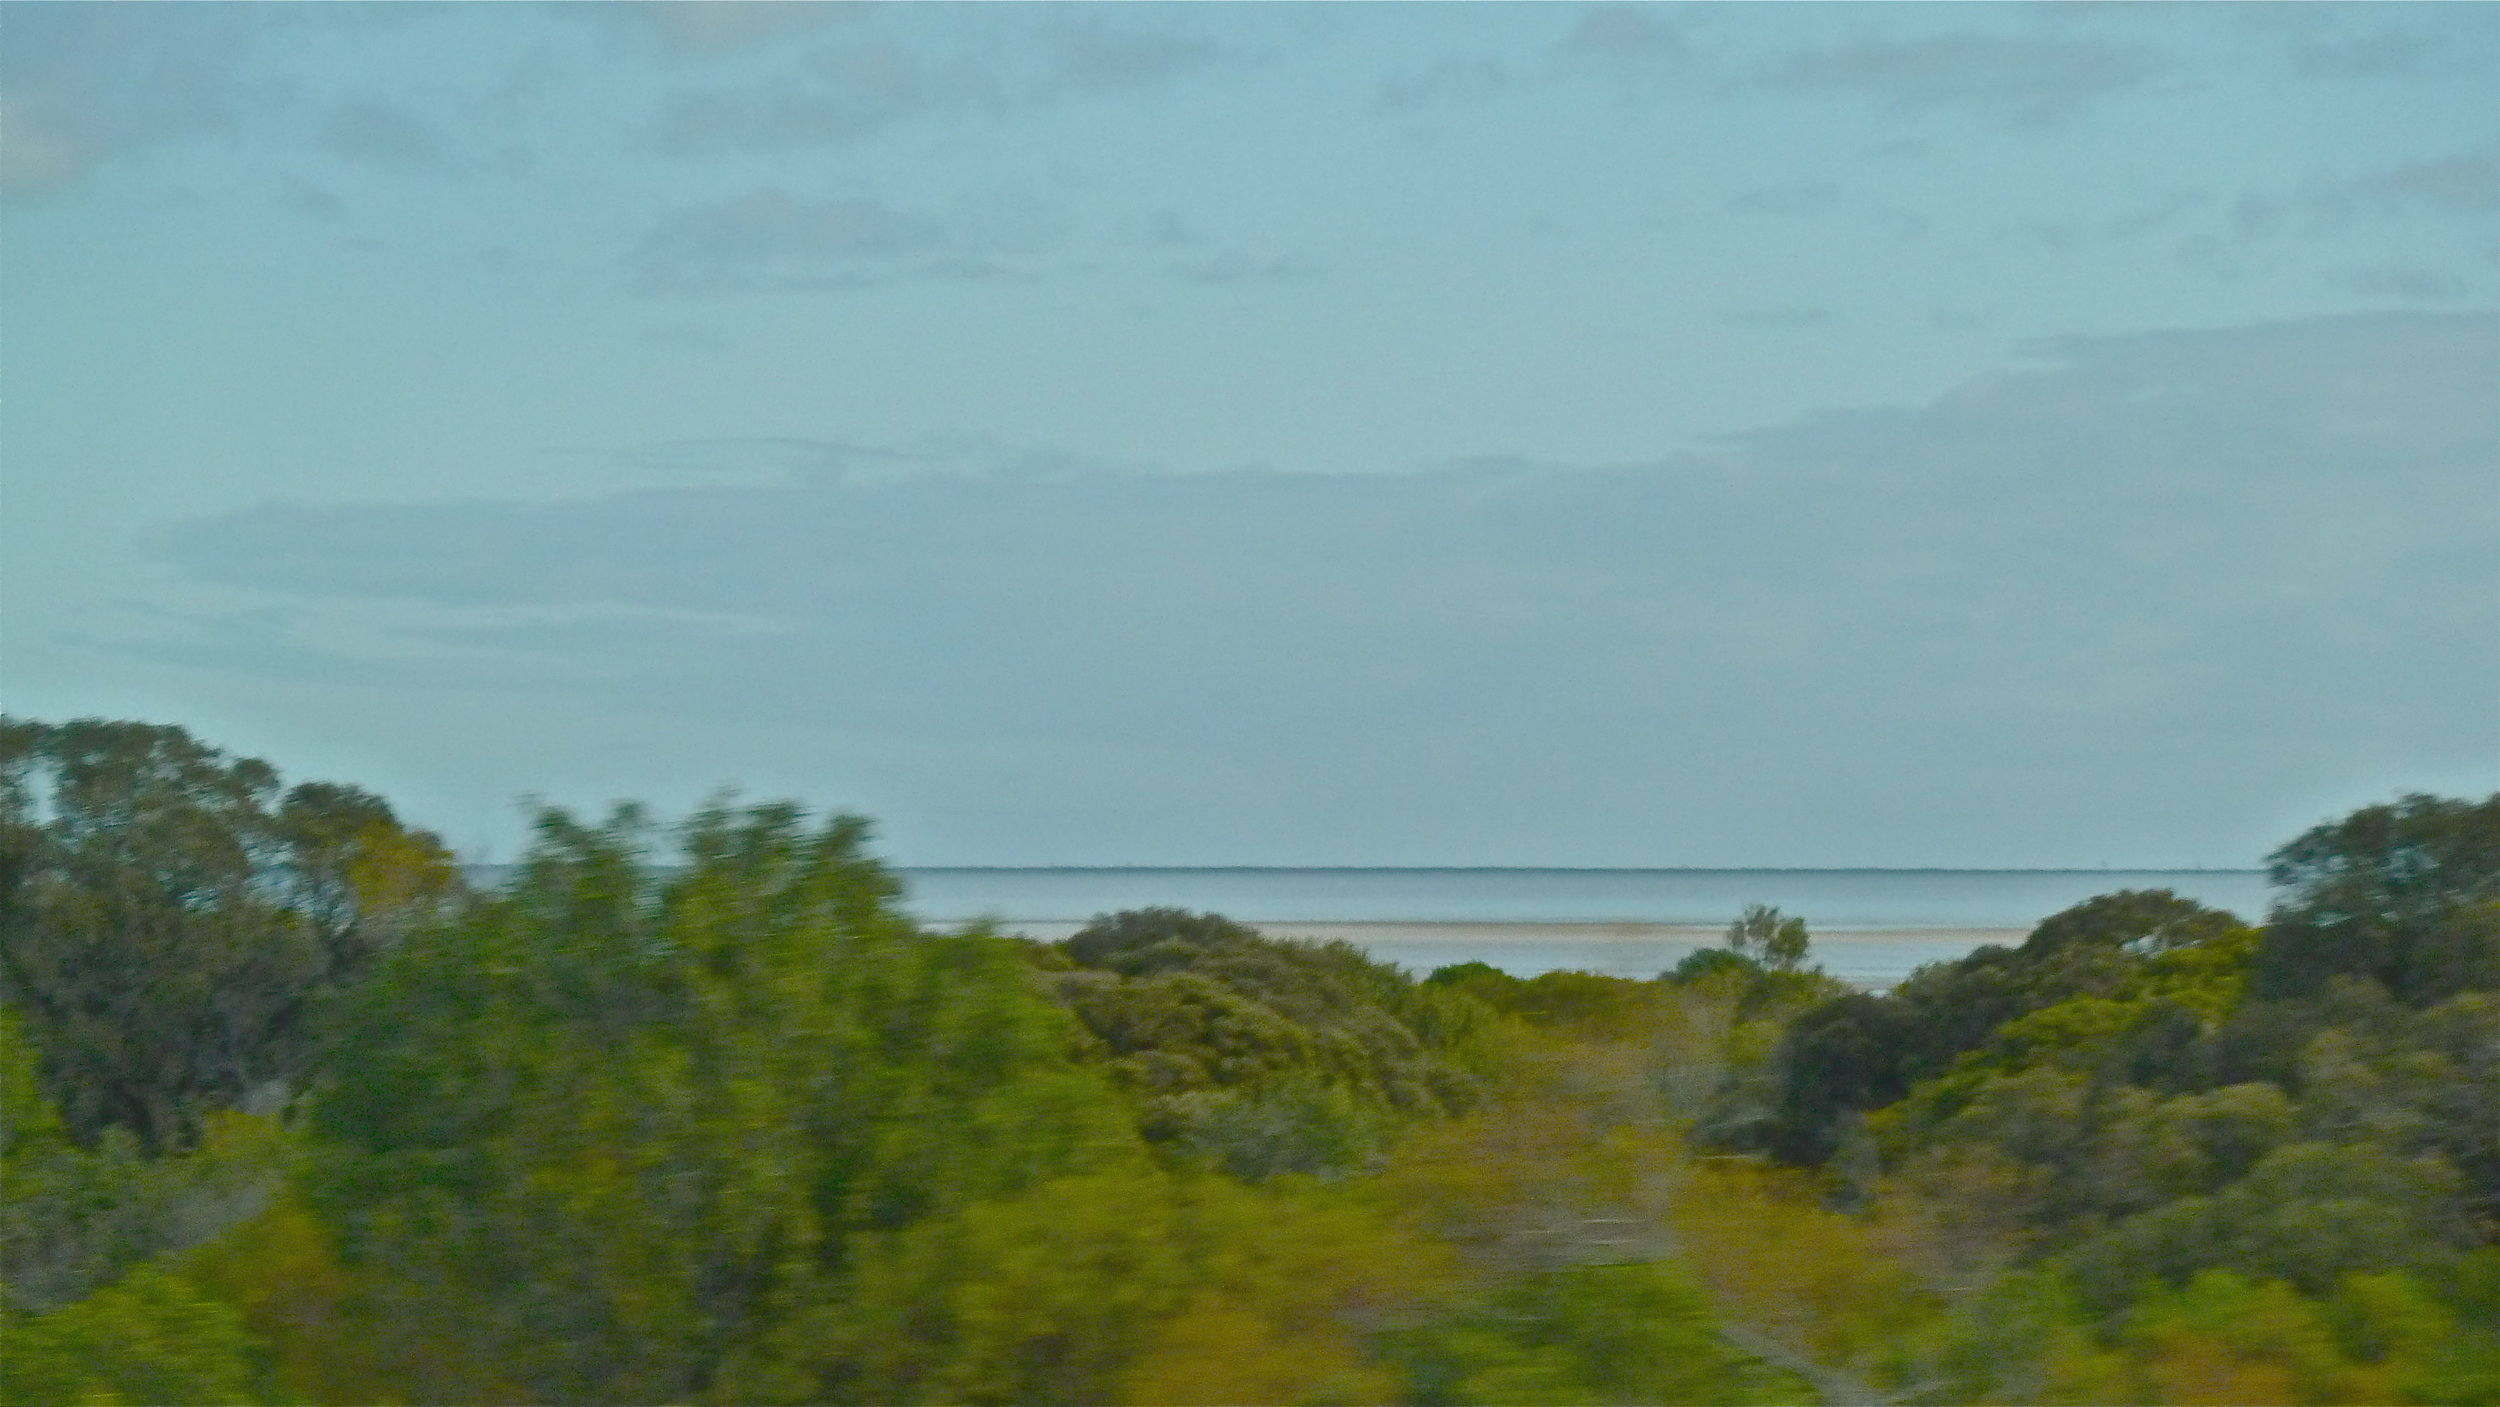 A distant Spencer Gulf